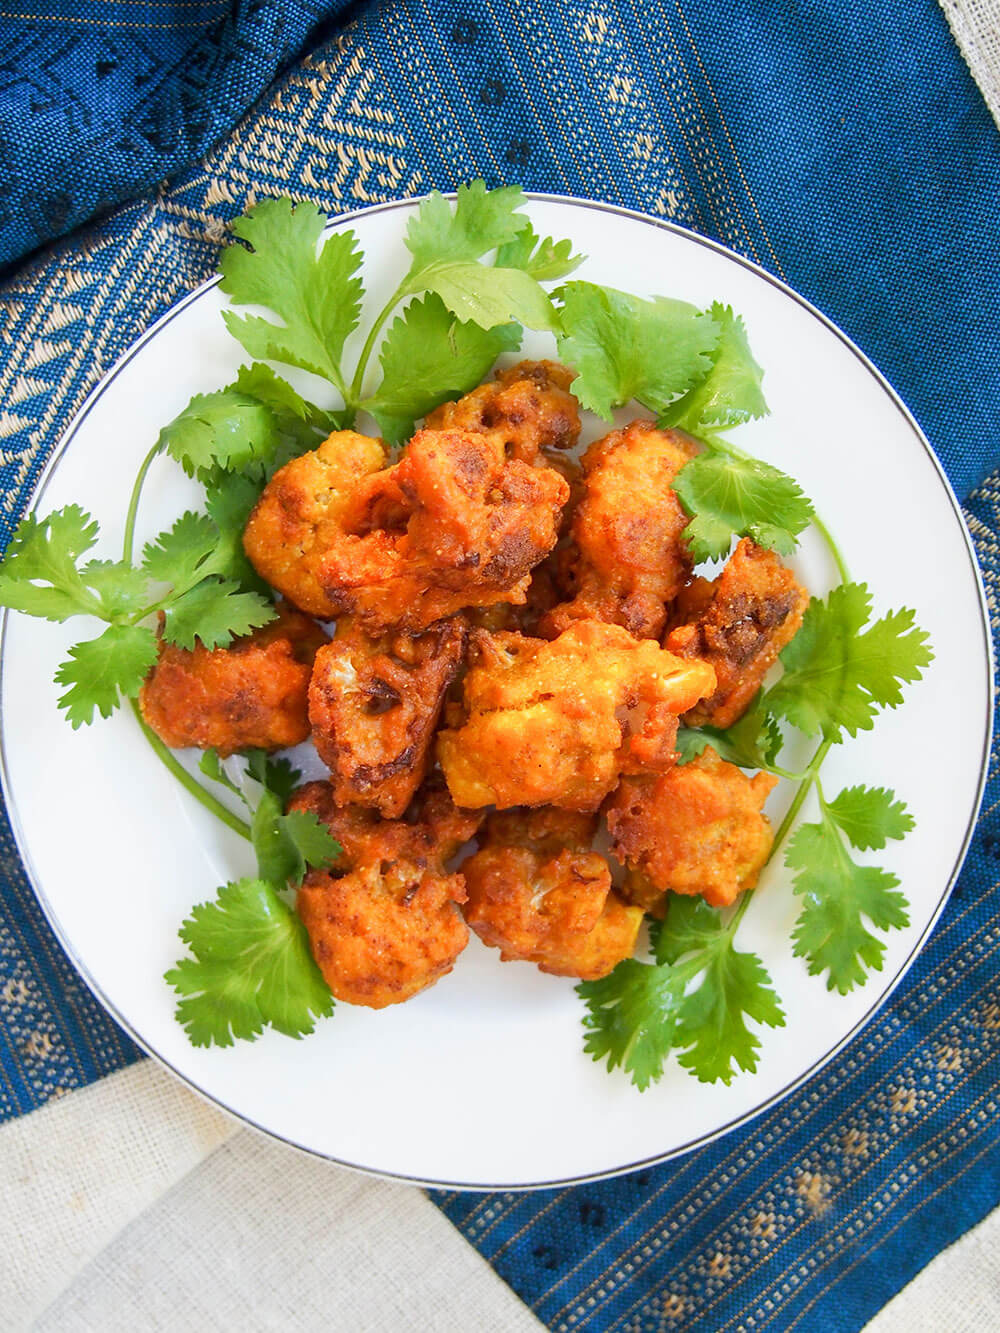 Cauliflower pakora on plate